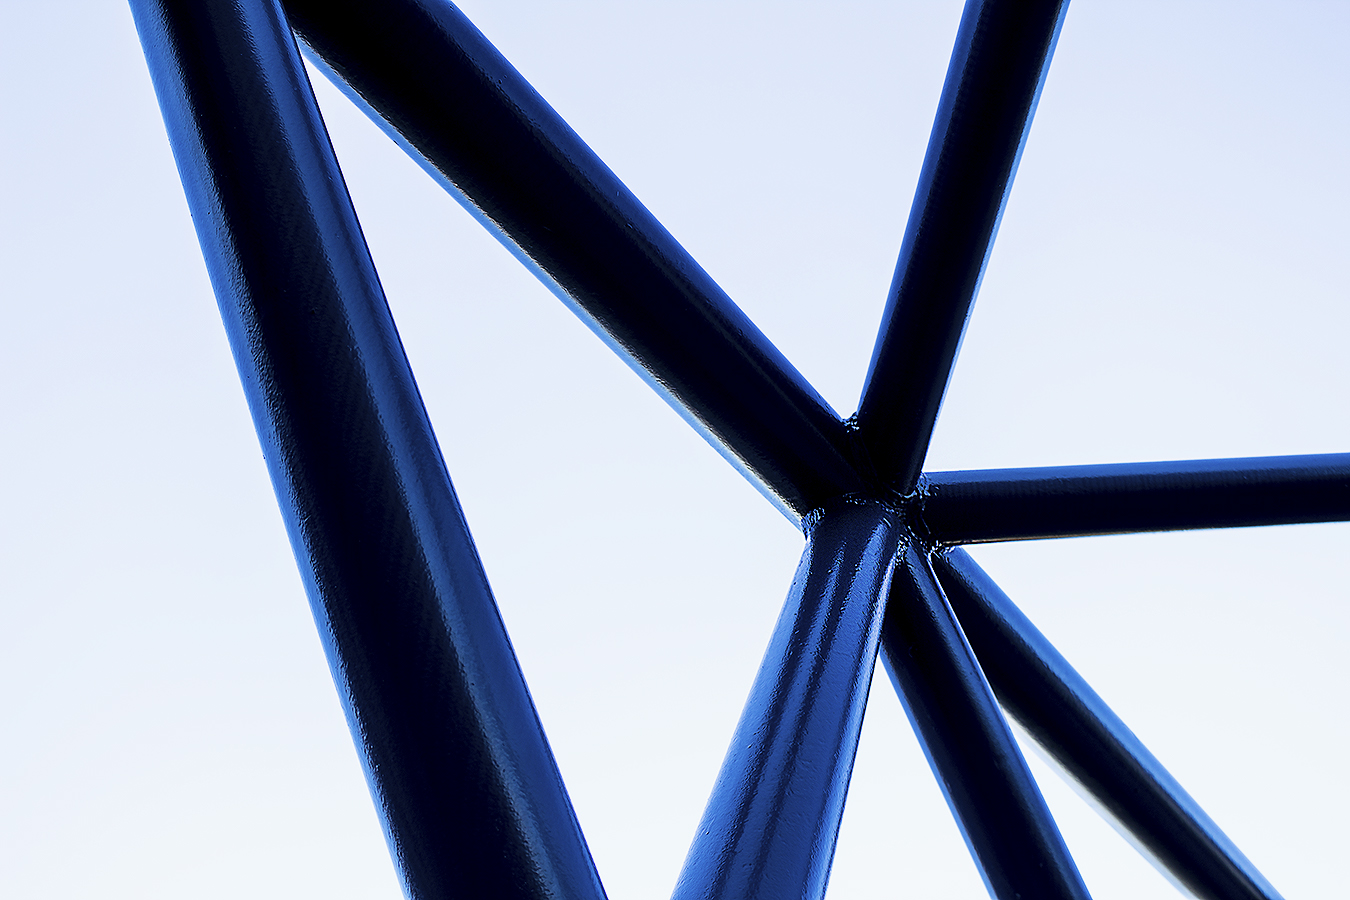 Janelle_Tong_Photography_Tony_Ward_Studio_Individual_Project_UPenn_Penn_Park_Bridges_Crosses_Sky_Blue_Structure_2